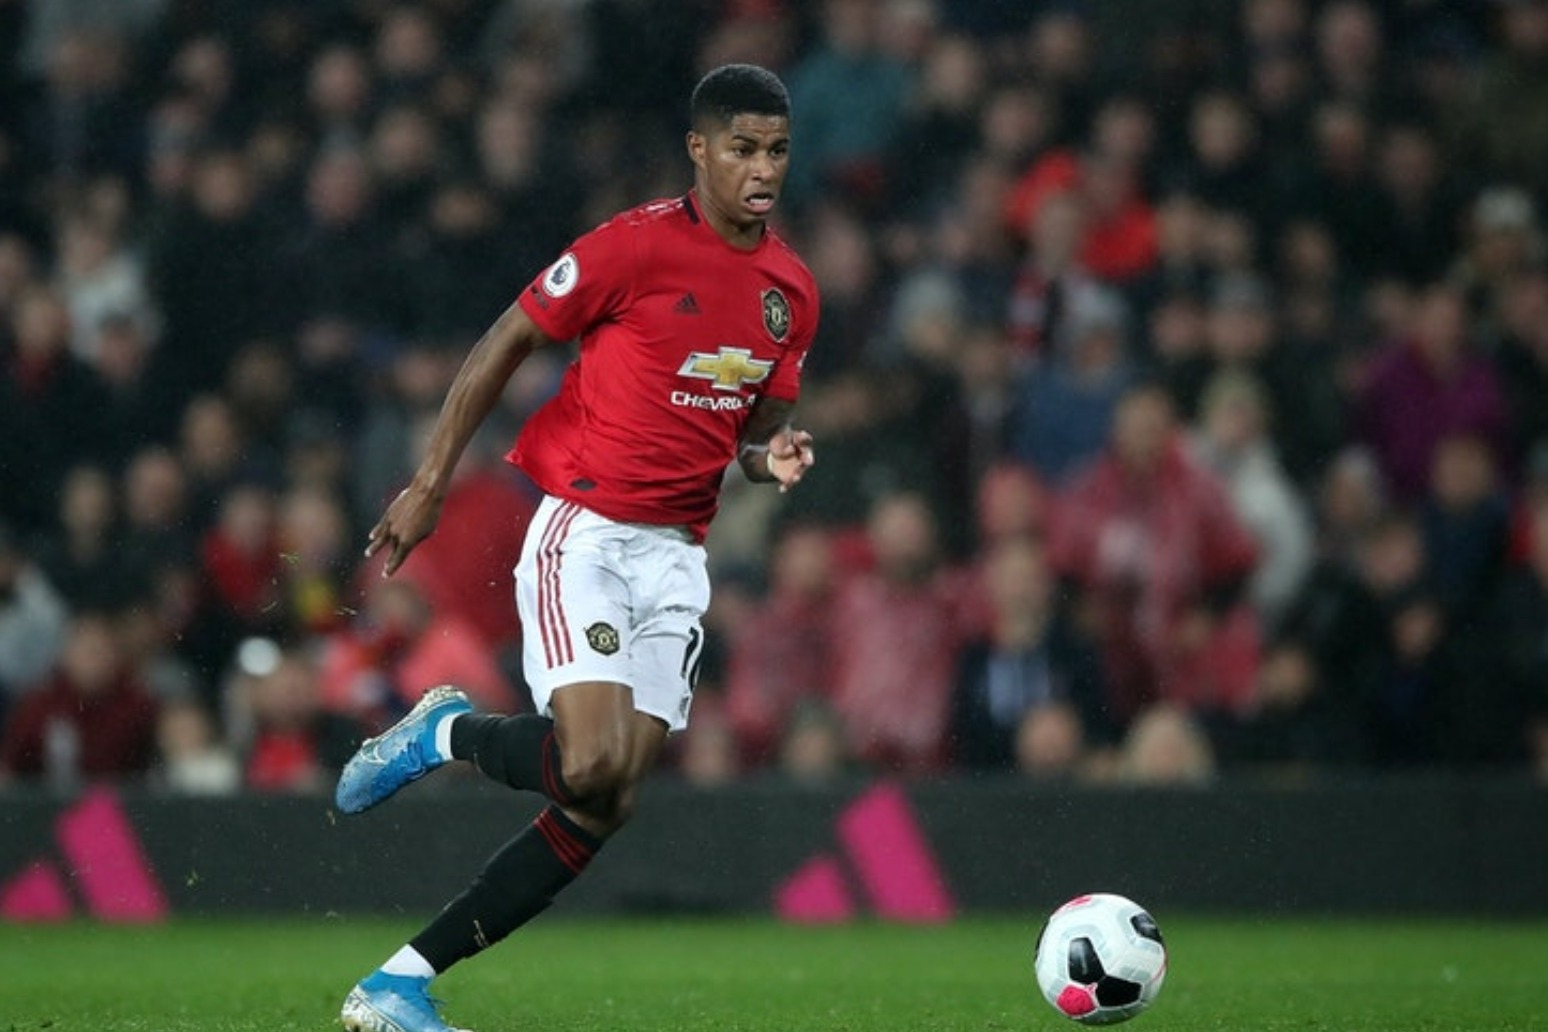 Manchester United's Marcus Rashford leads new child food poverty task force